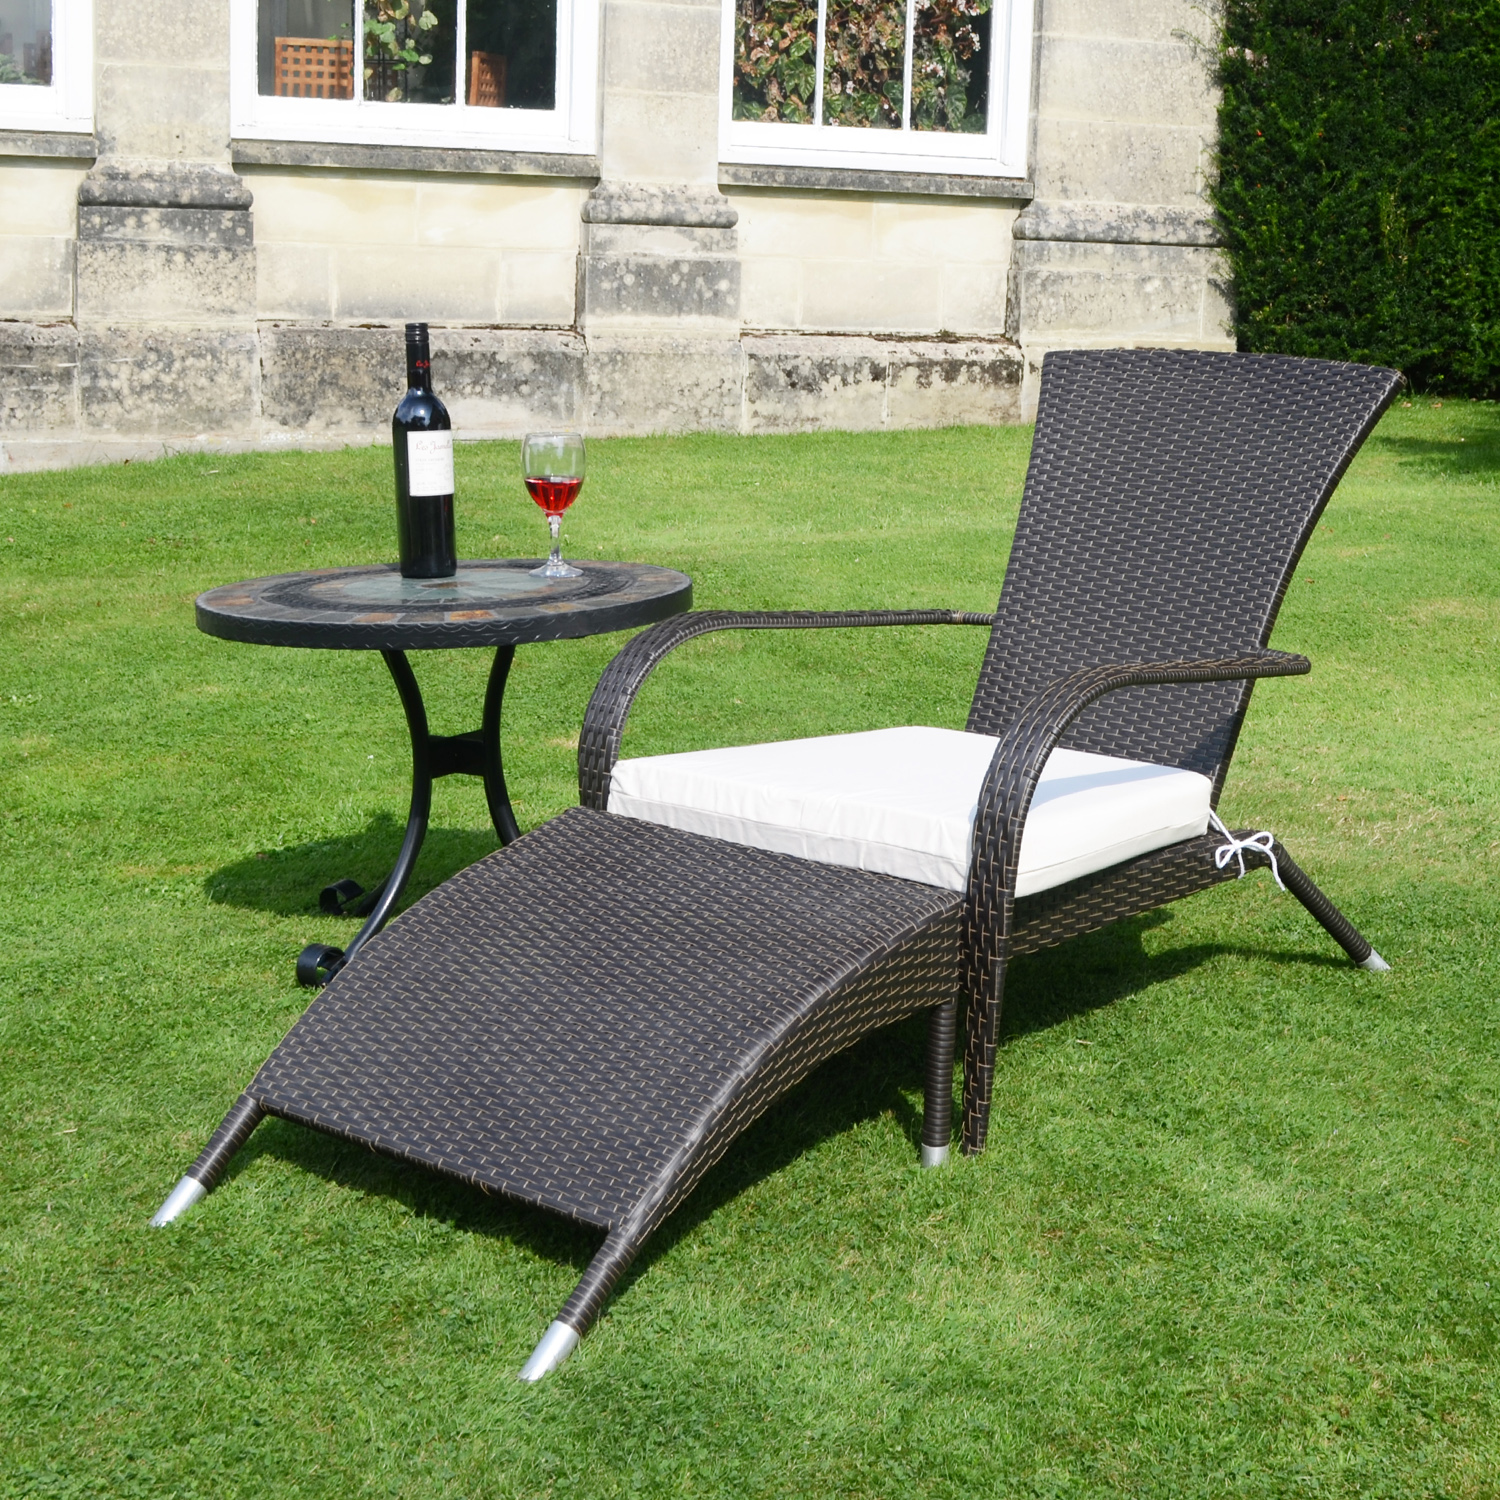 patio chairs with footrests wheelchair access width tarifa garden chair and footrest